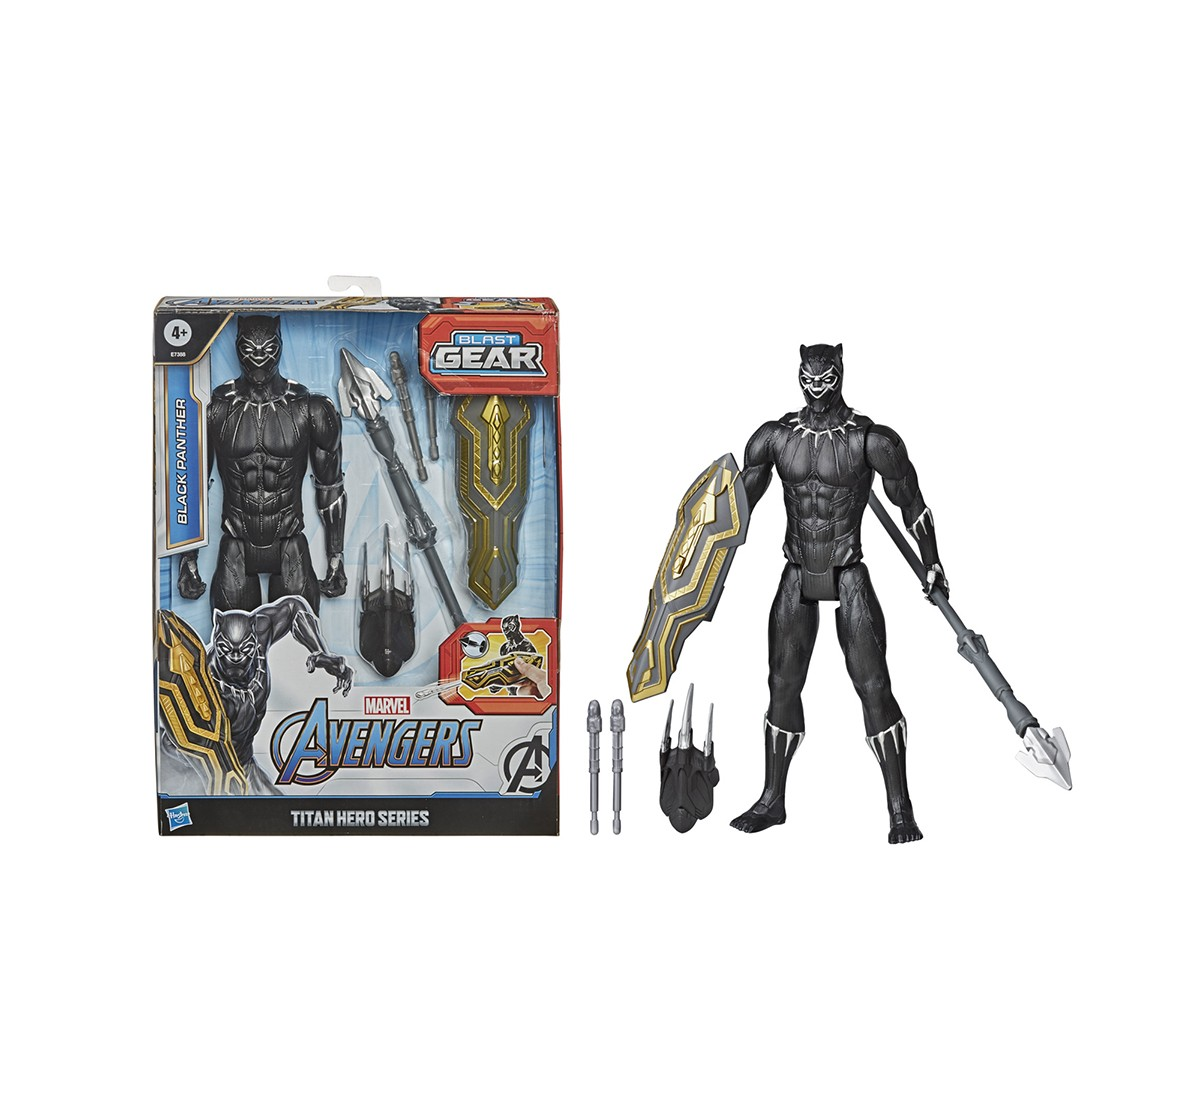 Marvel Avengers Titan Hero Series Blast Gear Black Panther Action Figure Play Sets for Boys age 4Y+